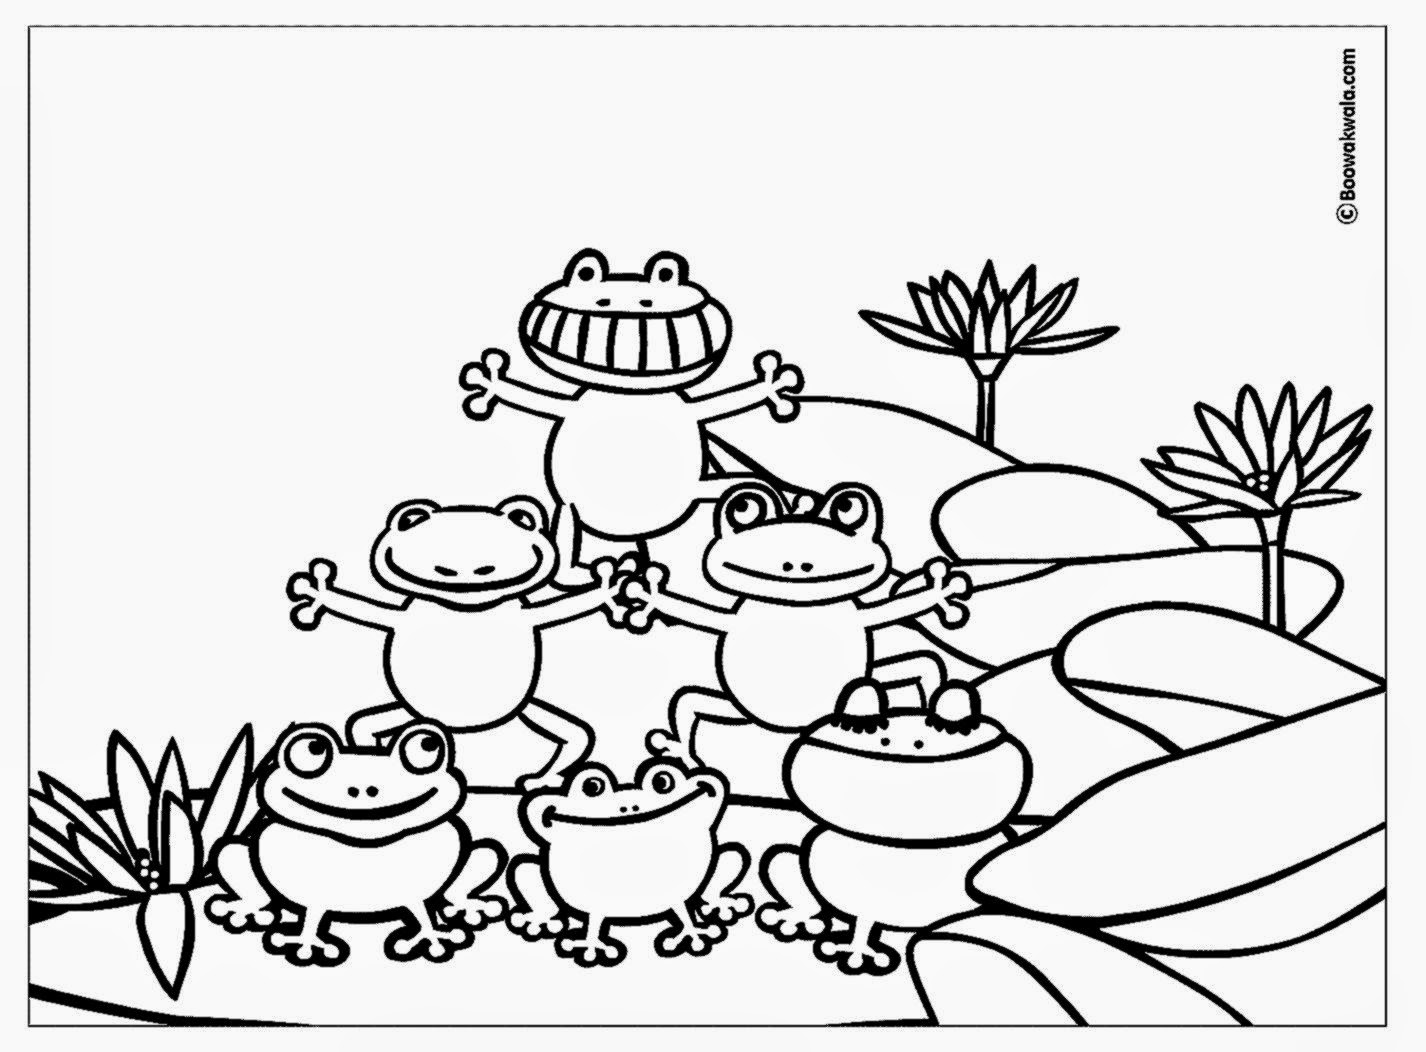 Coloring pages  Printable Coloring Page  picture  book  sheet